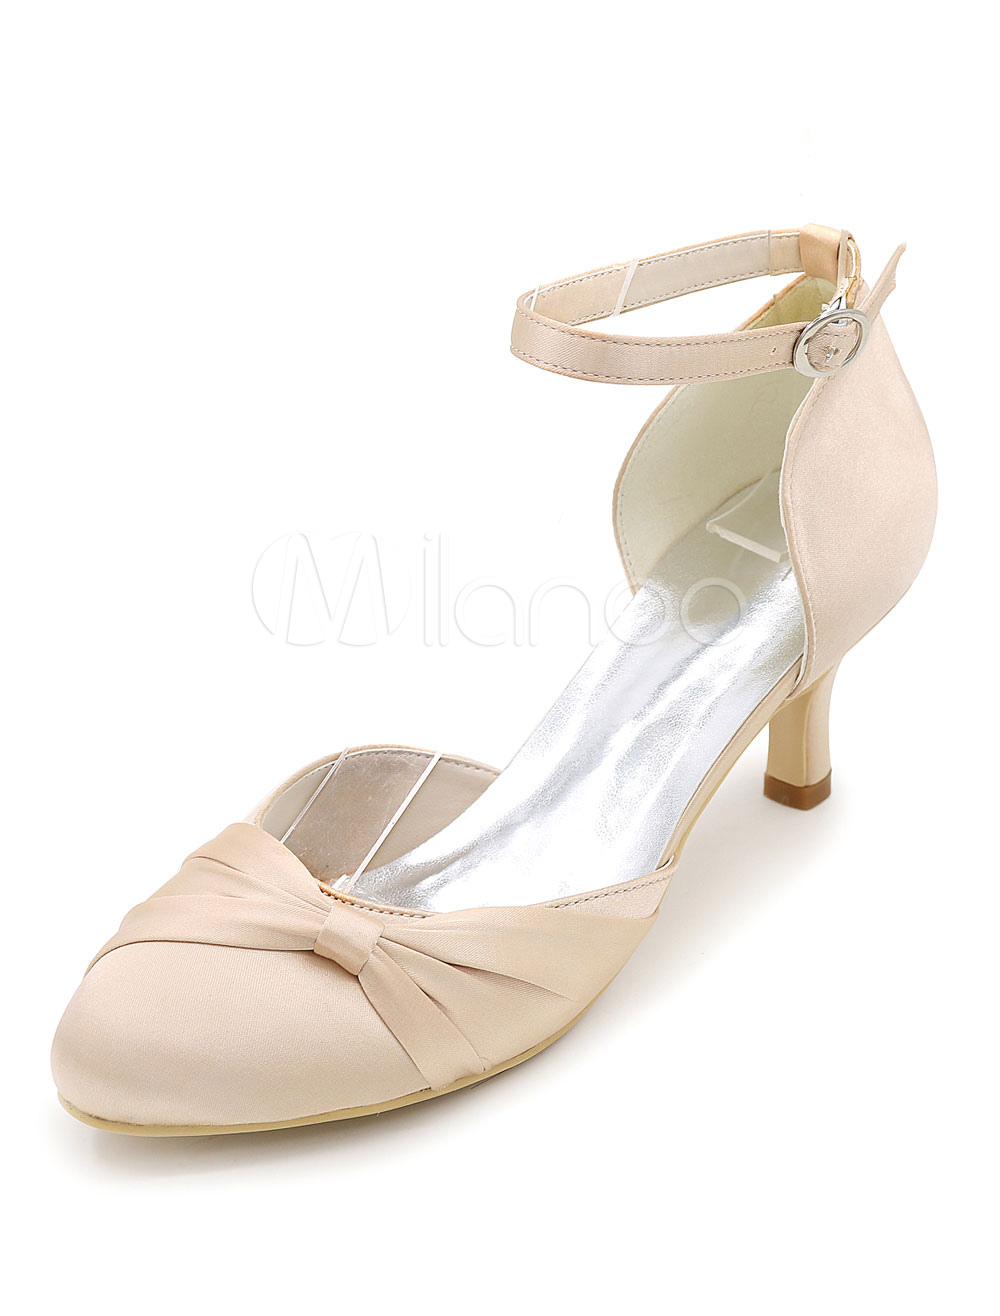 5c35020150f ... Ivory Wedding Shoes Satin High Heel Bridal Shoes Round Toe Ankle Strap  Kitten Heel Pumps-. 12. 30%OFF. Color Champagne